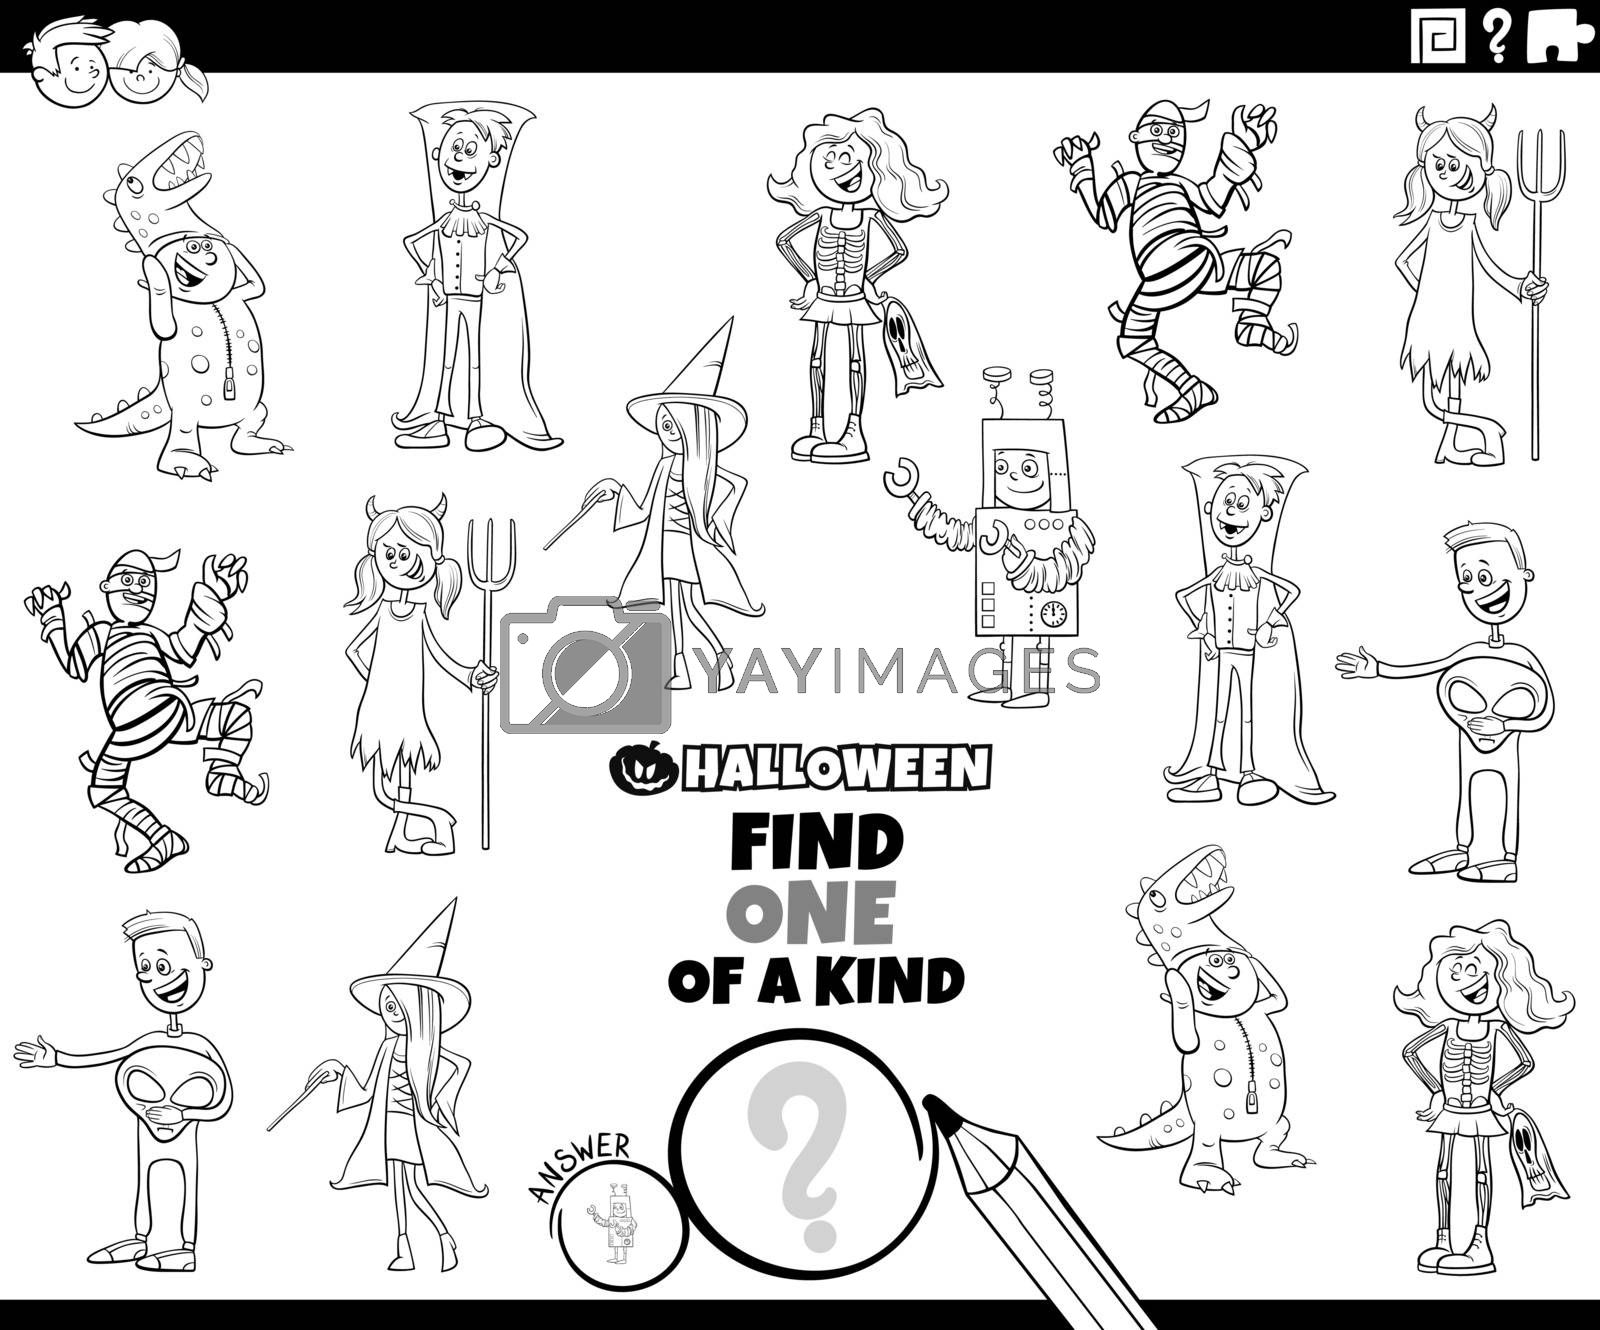 Black and White Cartoon Illustration of Find One of a Kind Picture Educational Game with Comic Halloween Party Characters Coloring Book Page